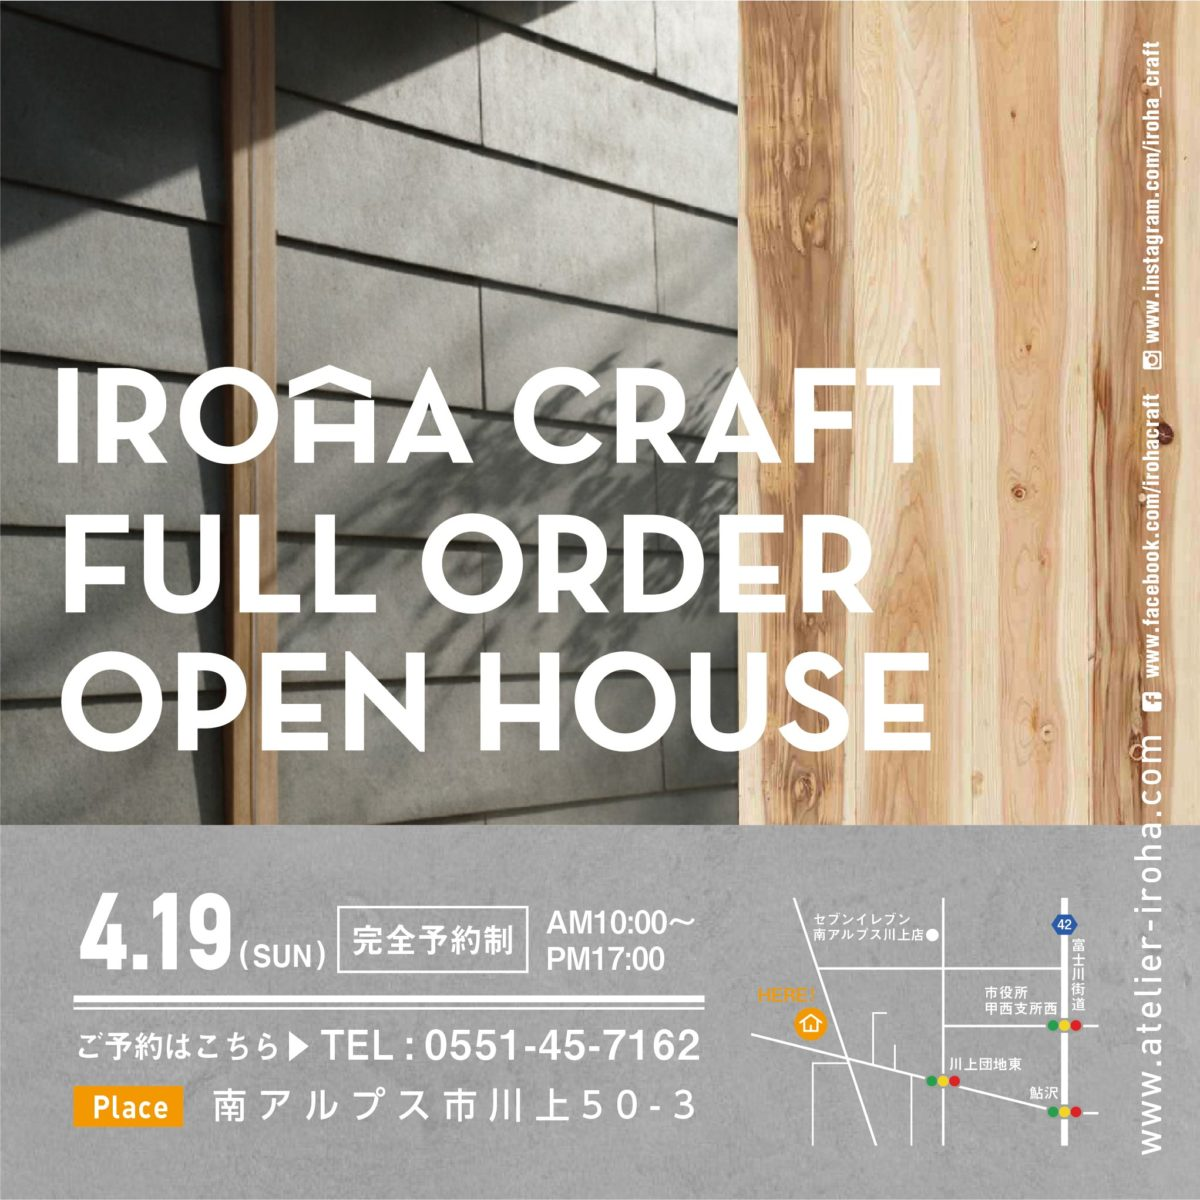 FULL ORDER OPEN HOUSE のお知らせ